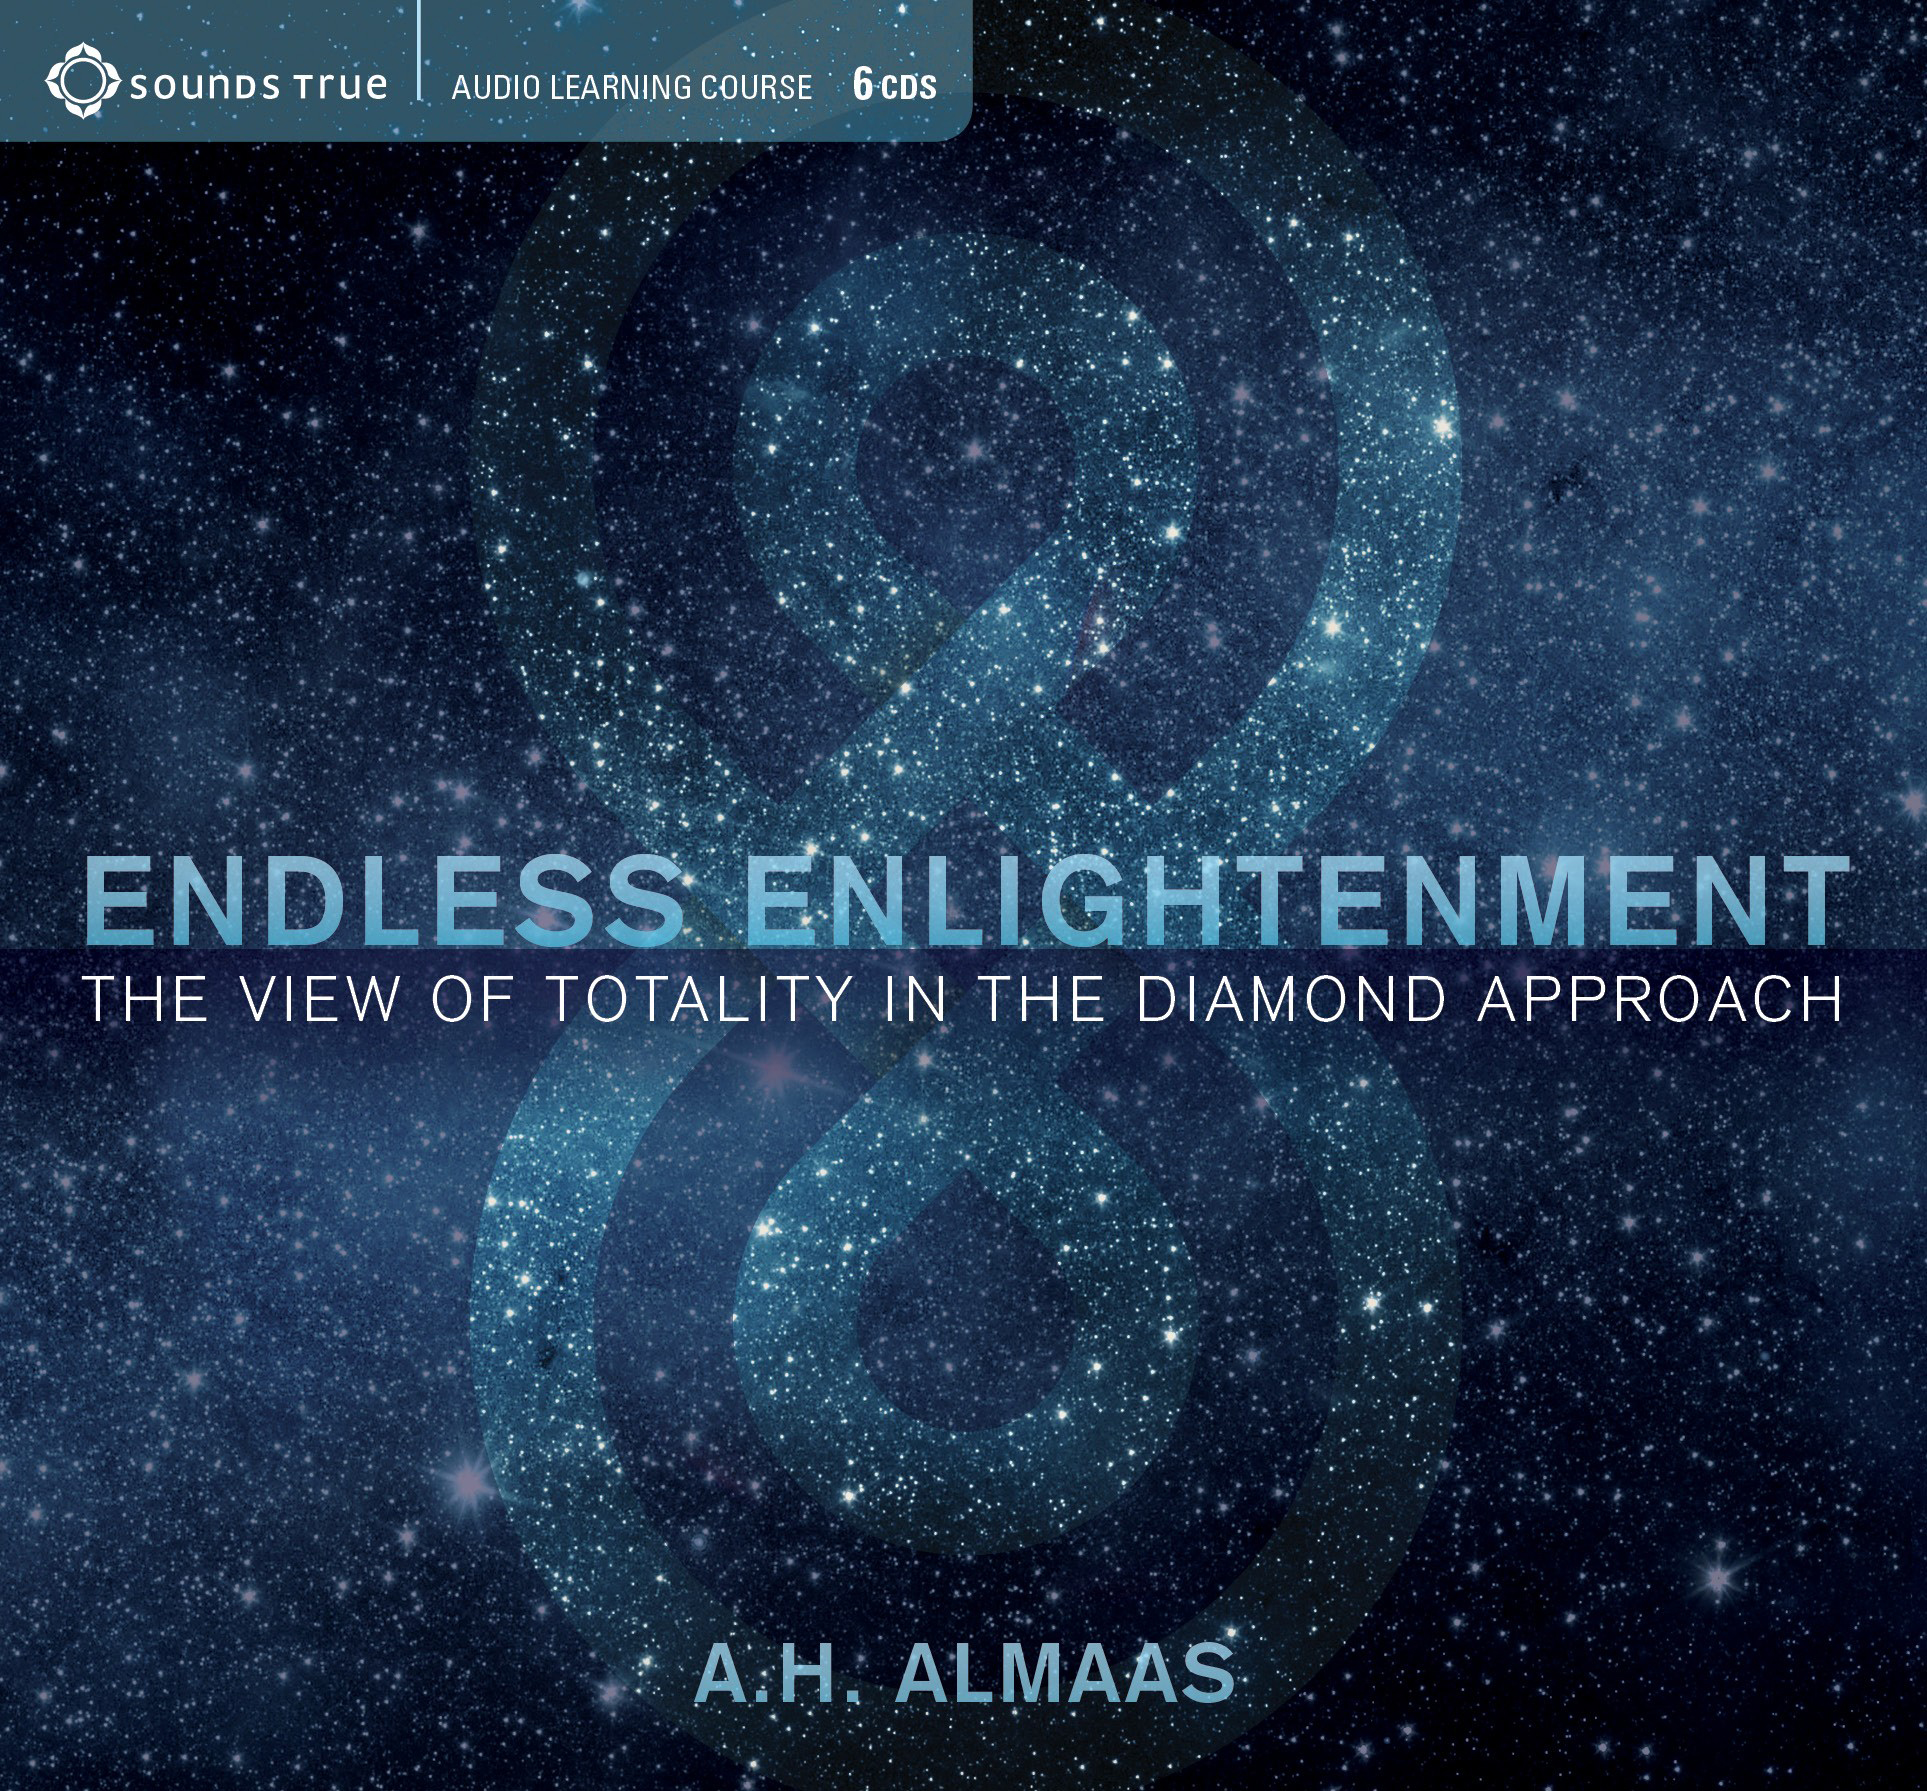 CD: Endless Enlightenment, 6 CDs